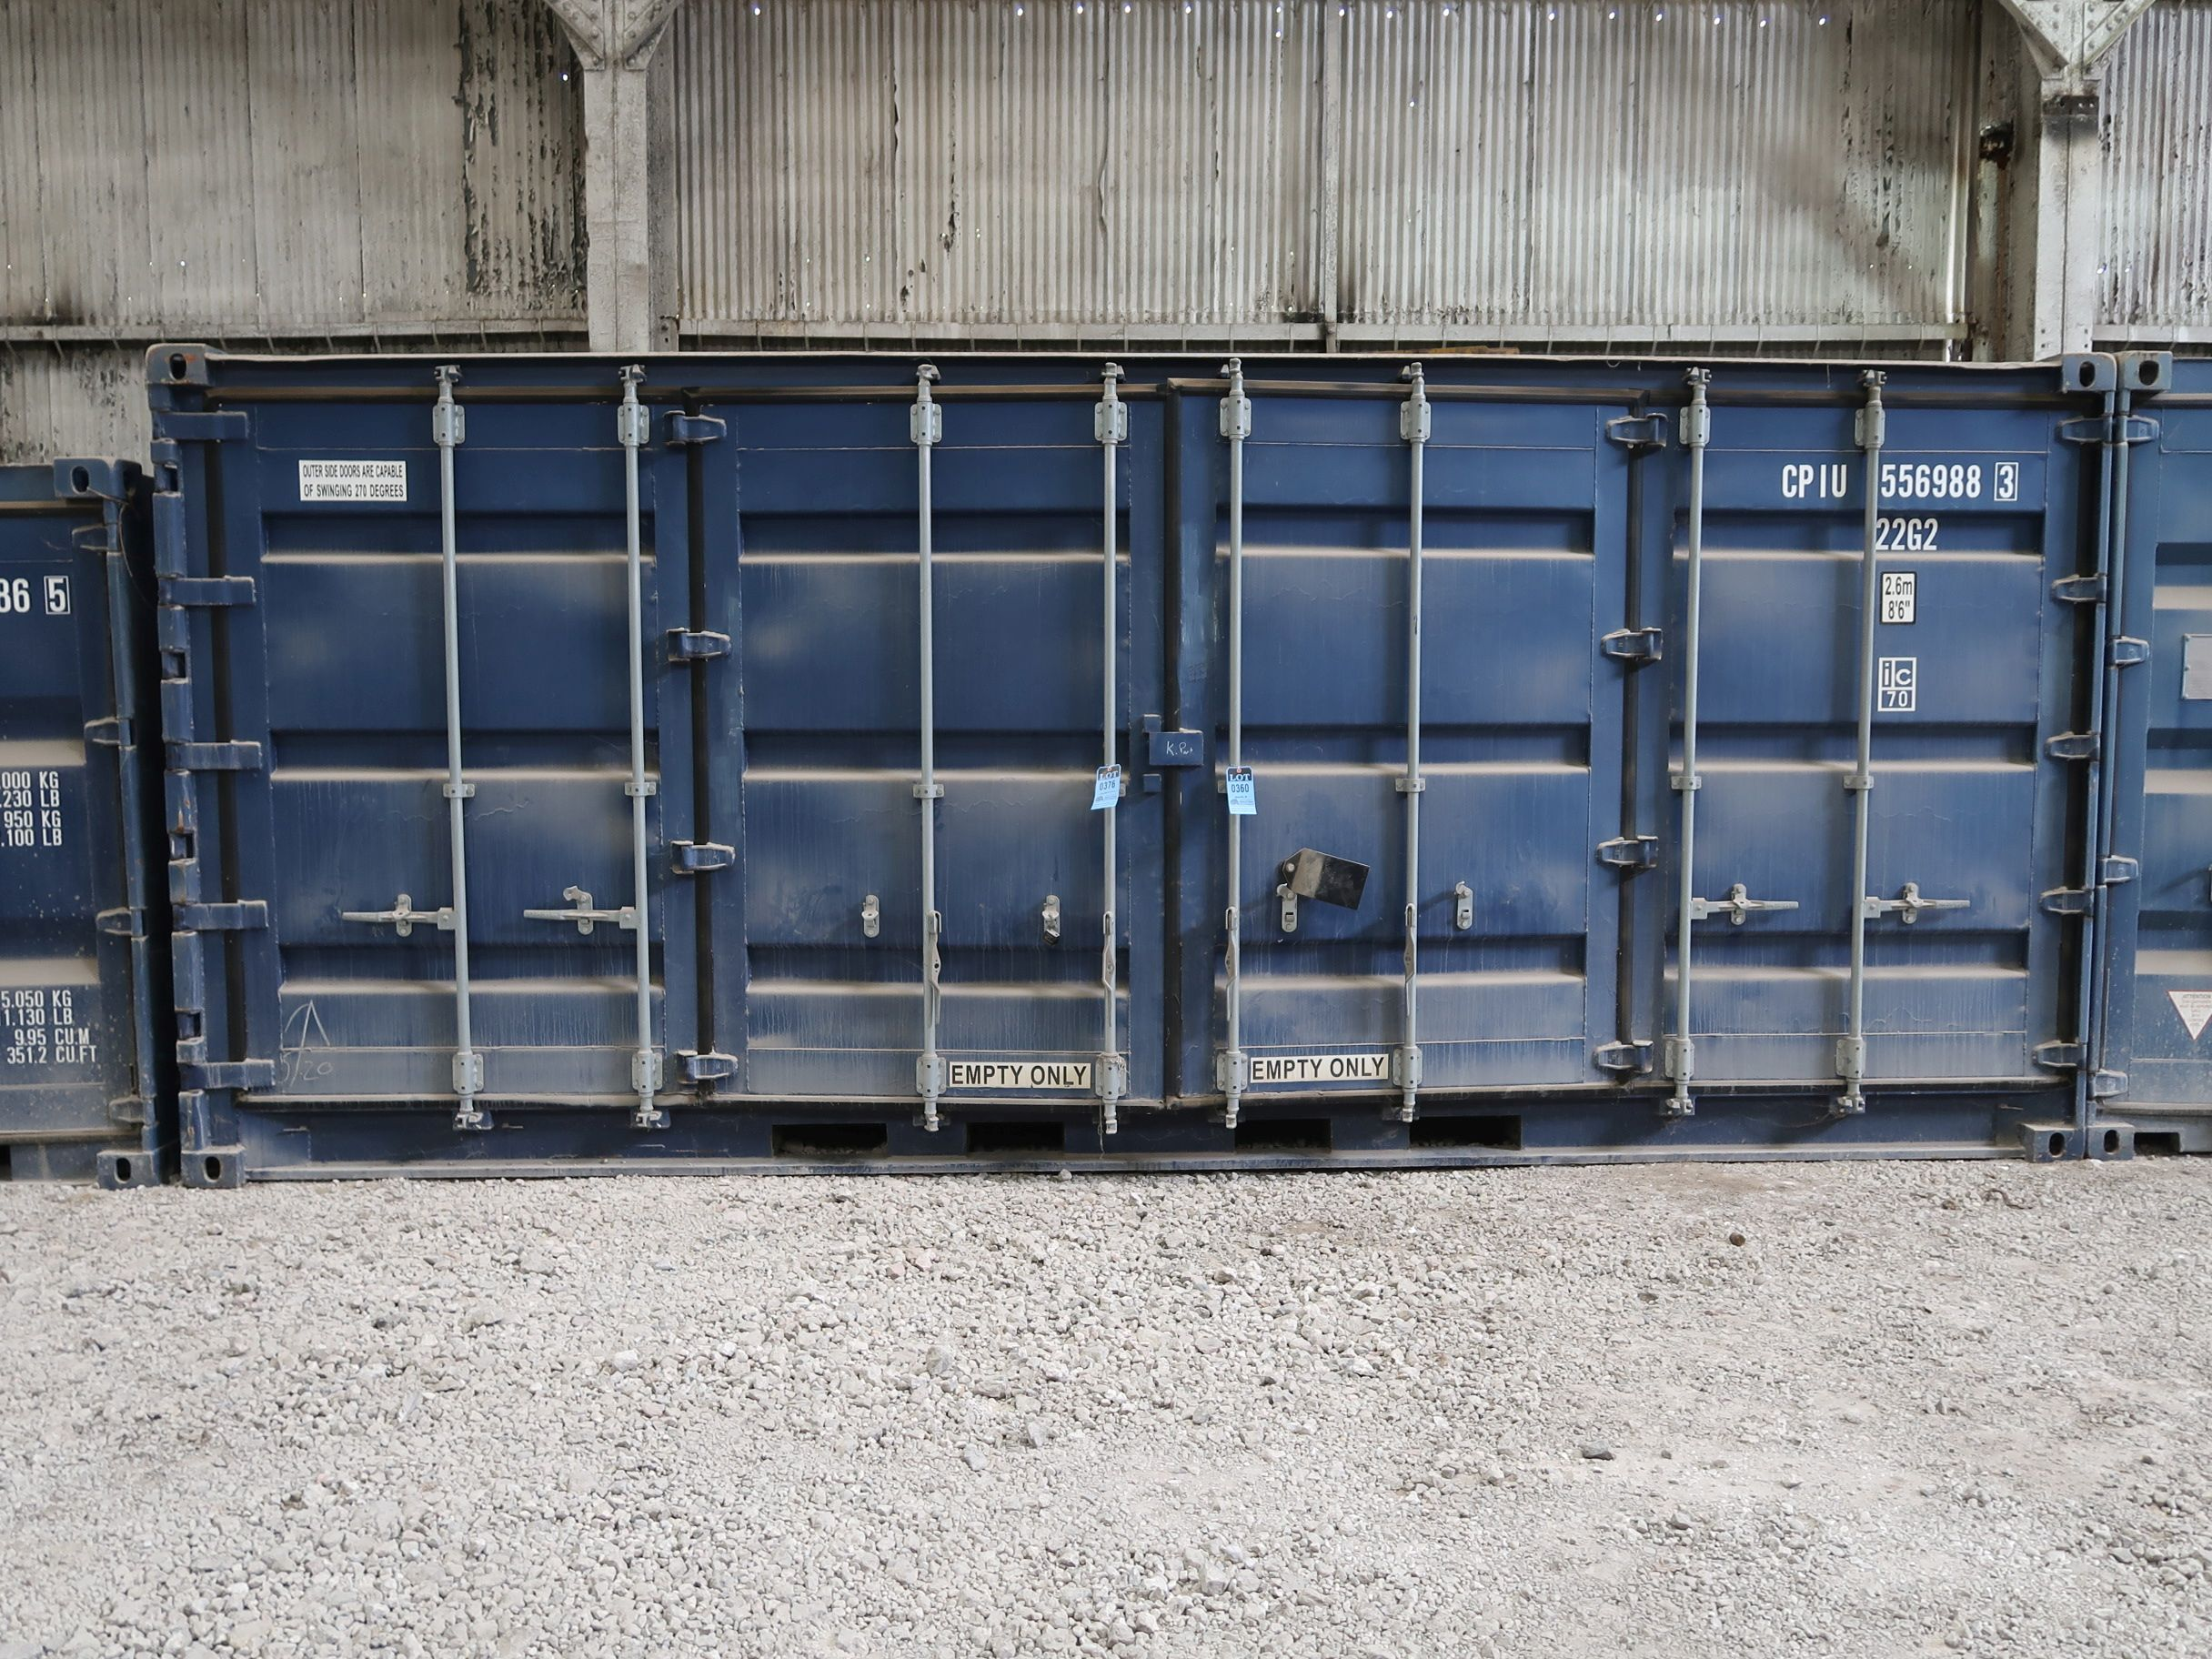 Lot 376 - 8' X 20' CONTAINER PROVIDER INTL. CONEX STORAGE CONTAINER WITH STANDARD END DOOR AND SIDE DOORS,